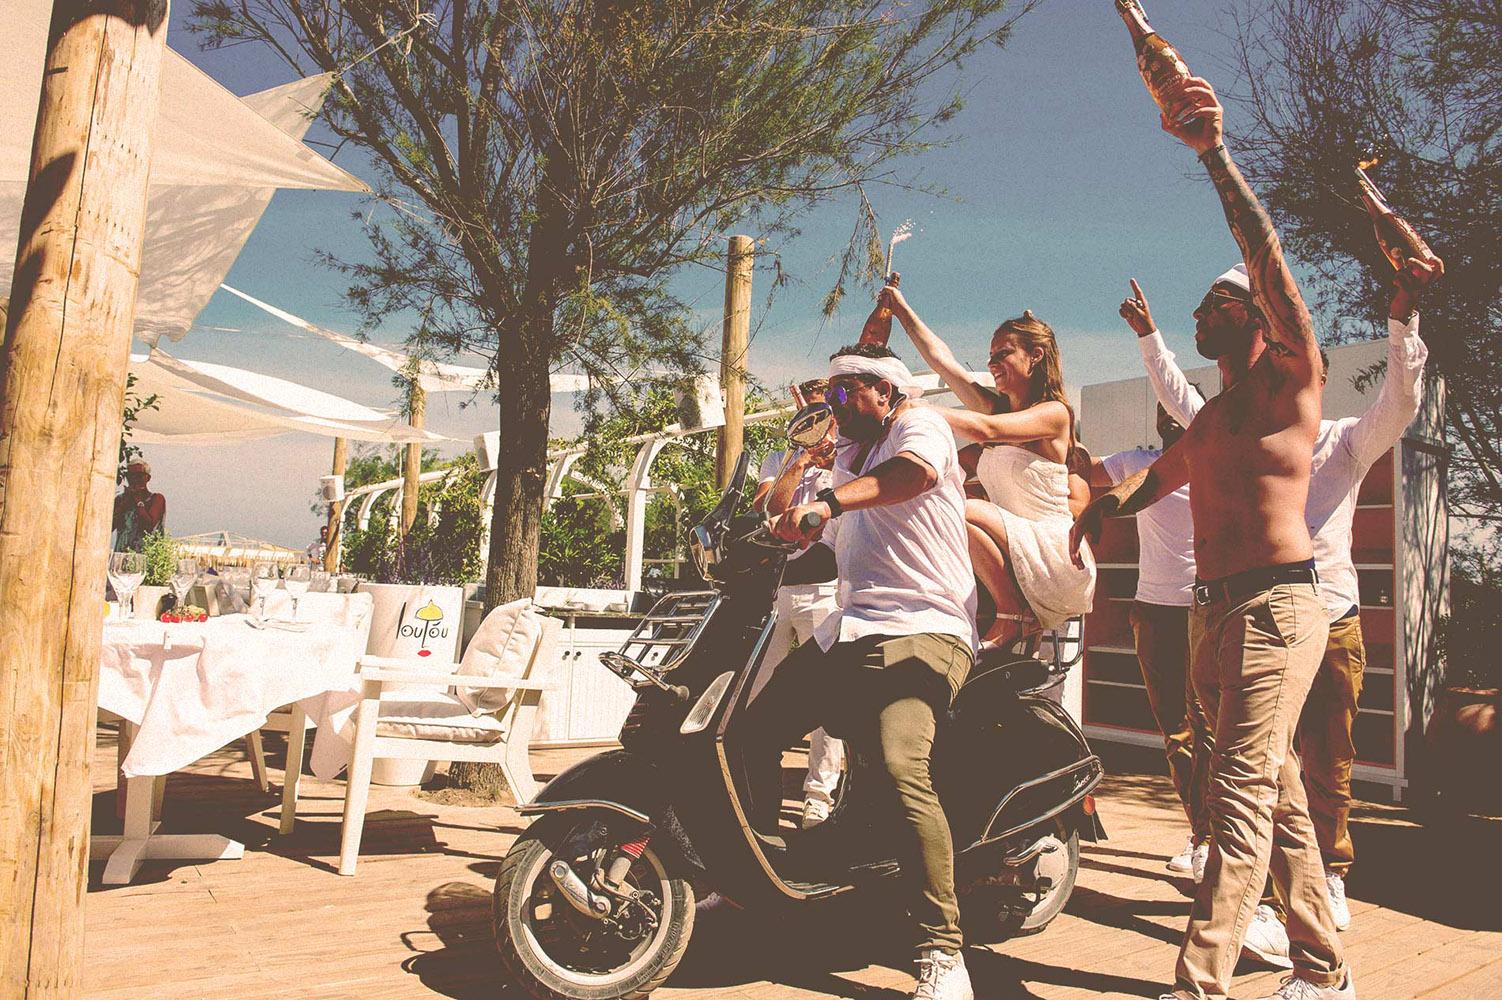 Festive days at Loulou Plage & Restaurant